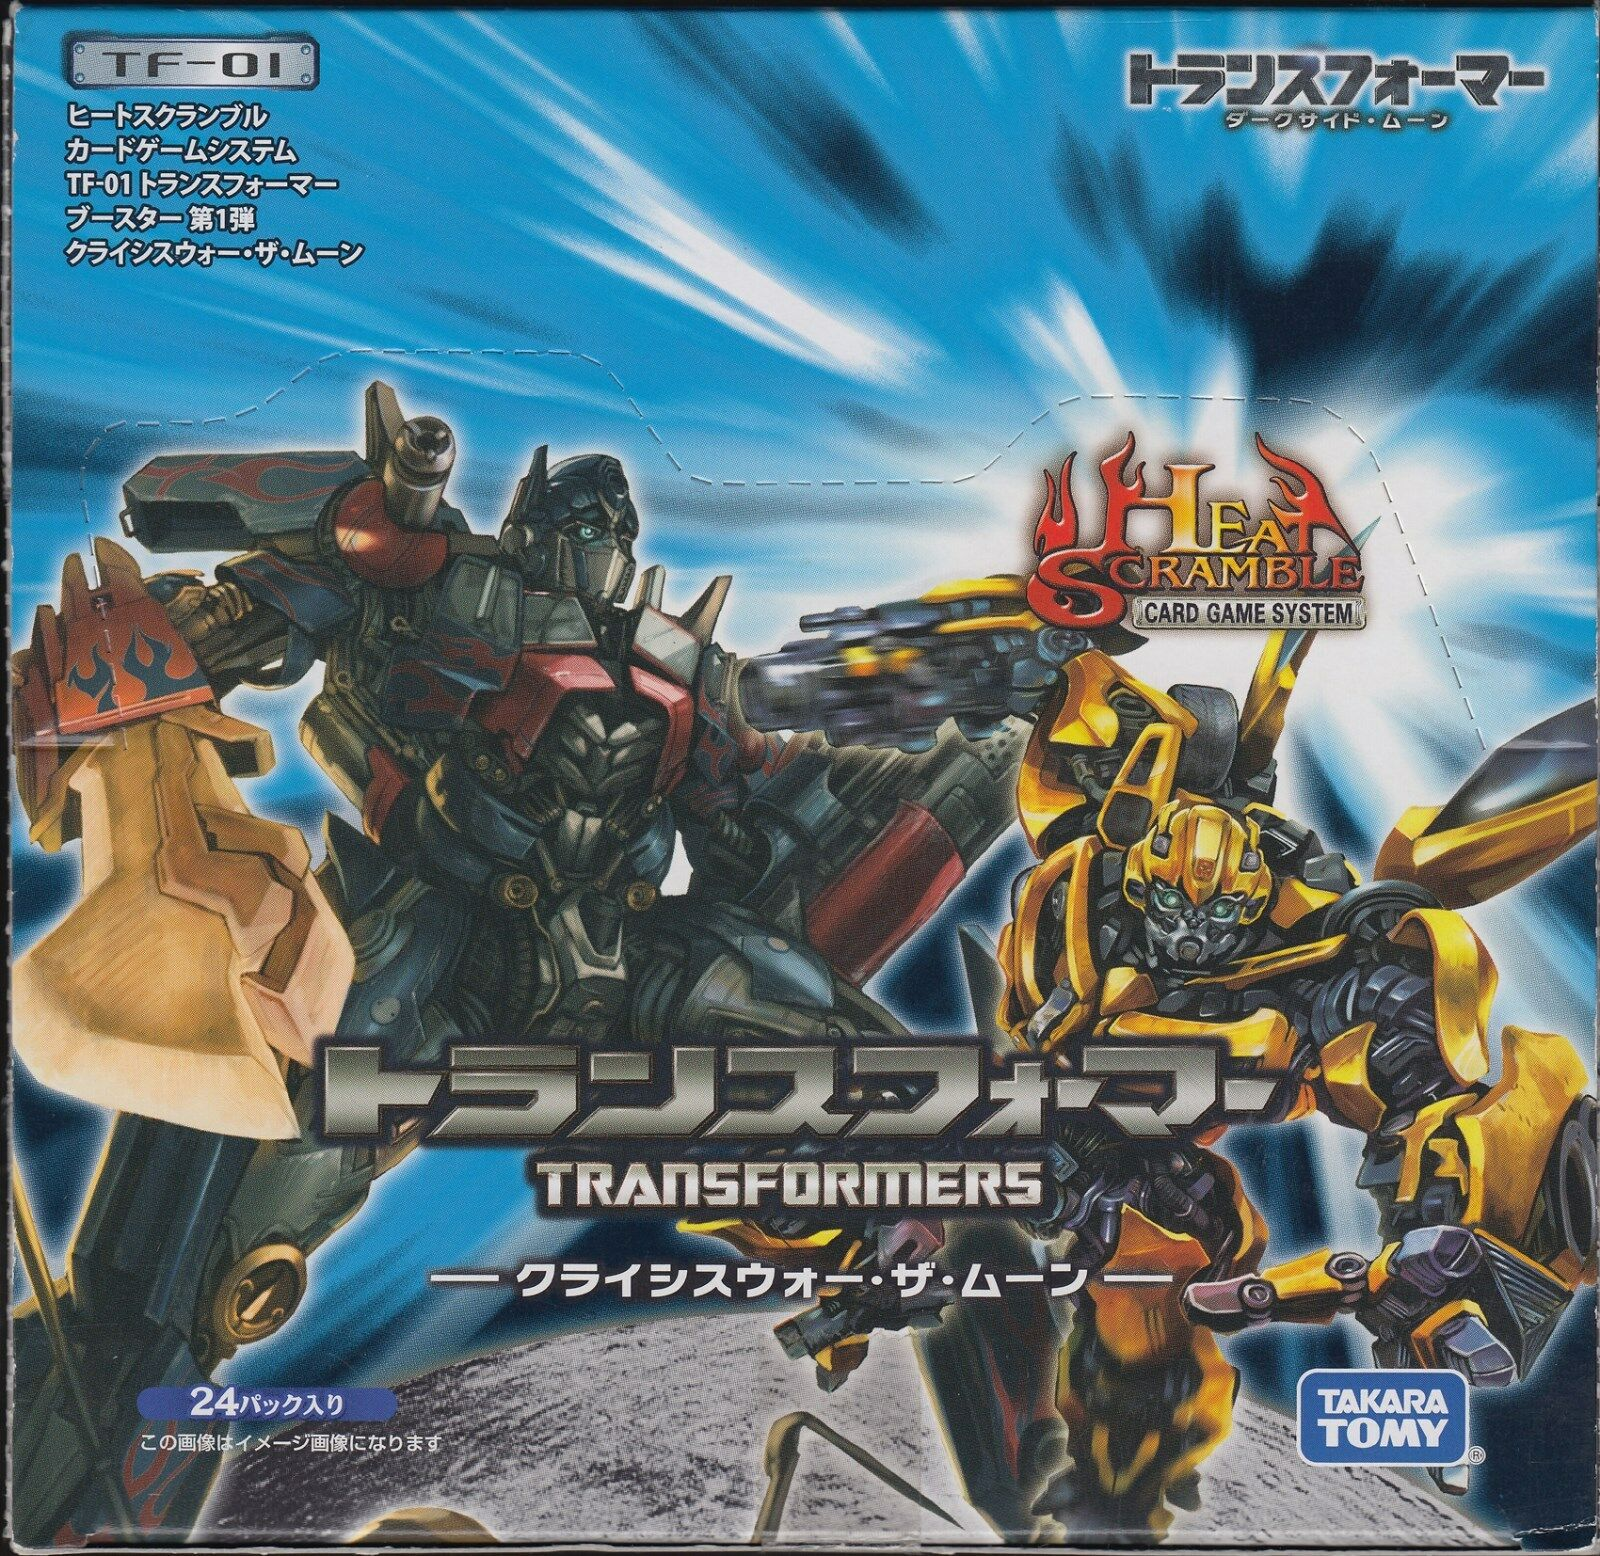 Transformers Heat Scramble Card Game Booster TF-01 Sealed Box Japanese